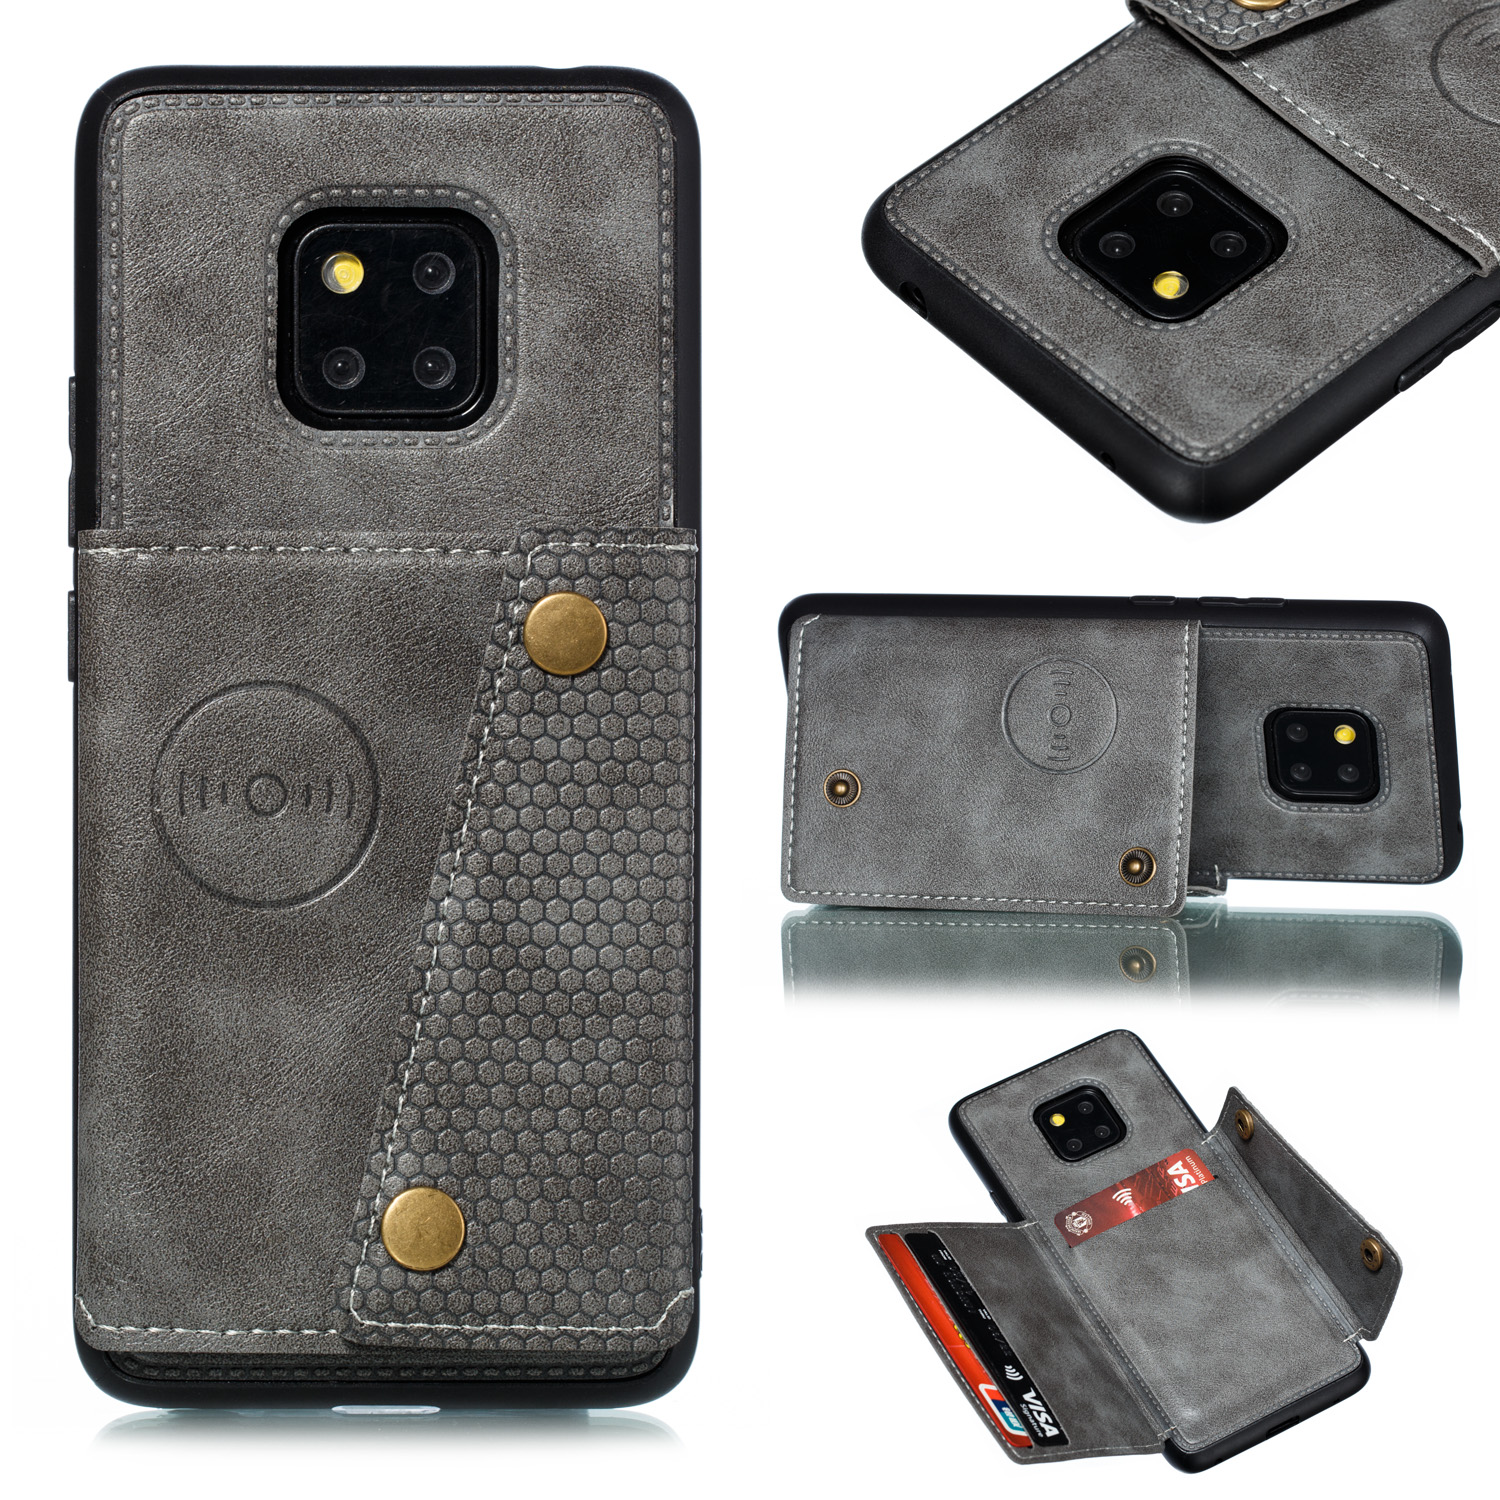 For HUAWEI MATE 20 PRO Double Buckle Non-slip Shockproof Cell Phone Case with Card Slot Bracket gray